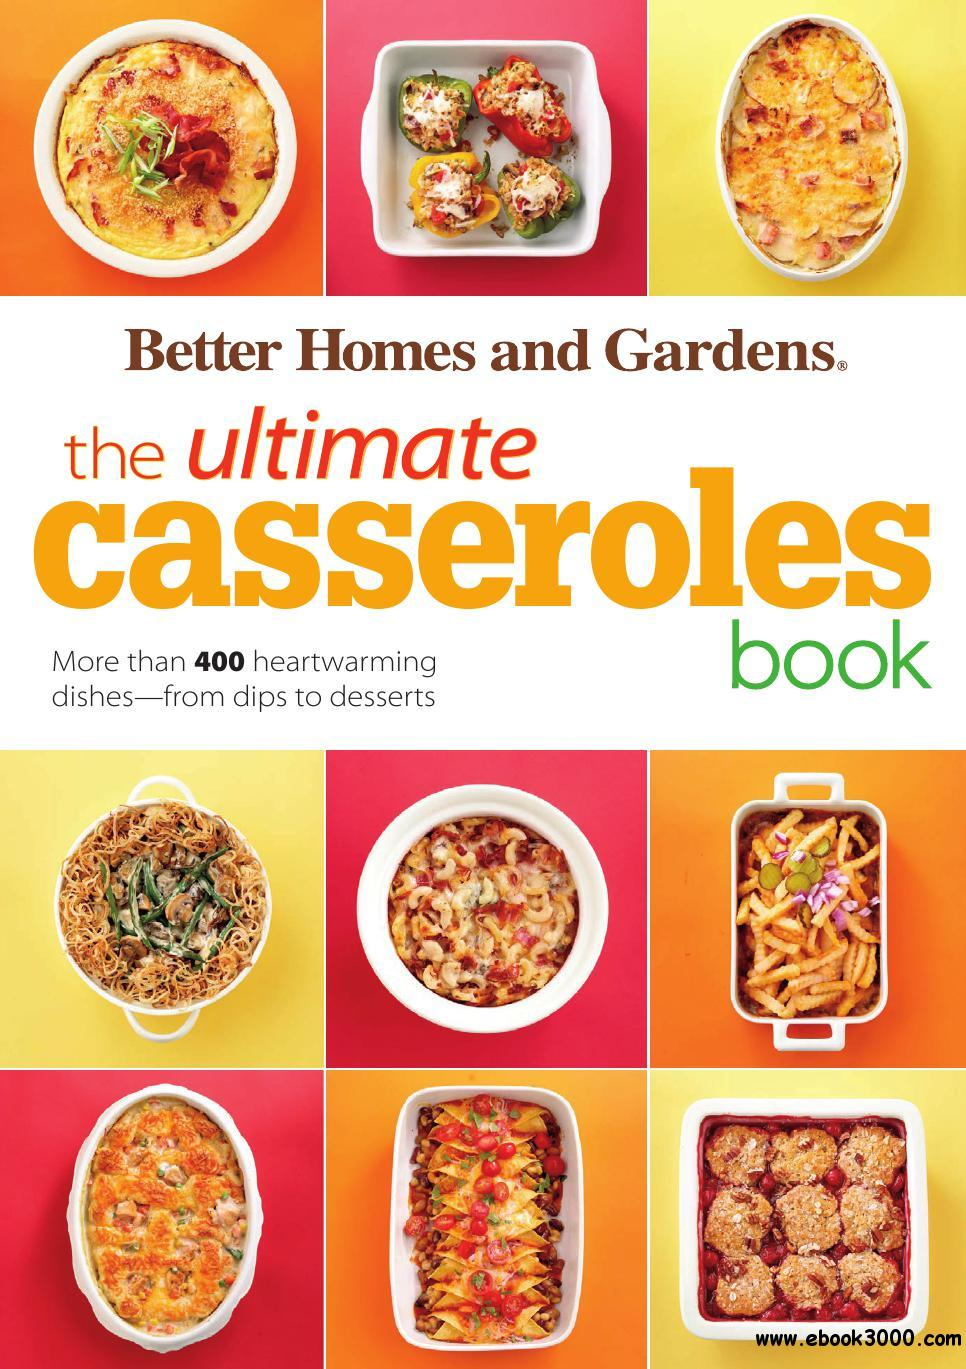 The Ultimate Casseroles Book: More than 400 Heartwarming Dishes from Dips to Desserts free download